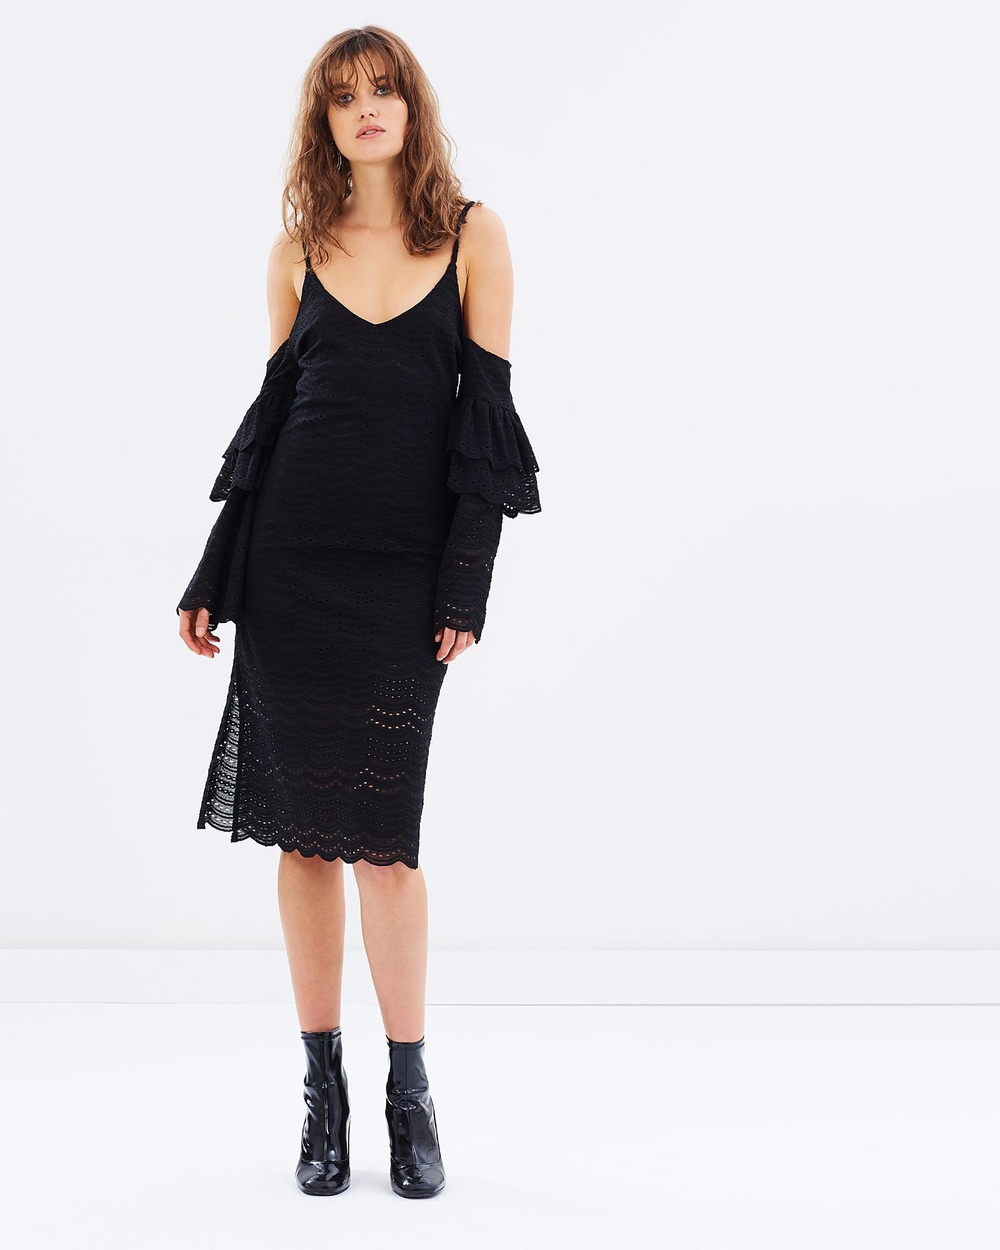 Livingstone Cooper Cecil Midi Dress Dresses Black Cecil Midi Dress